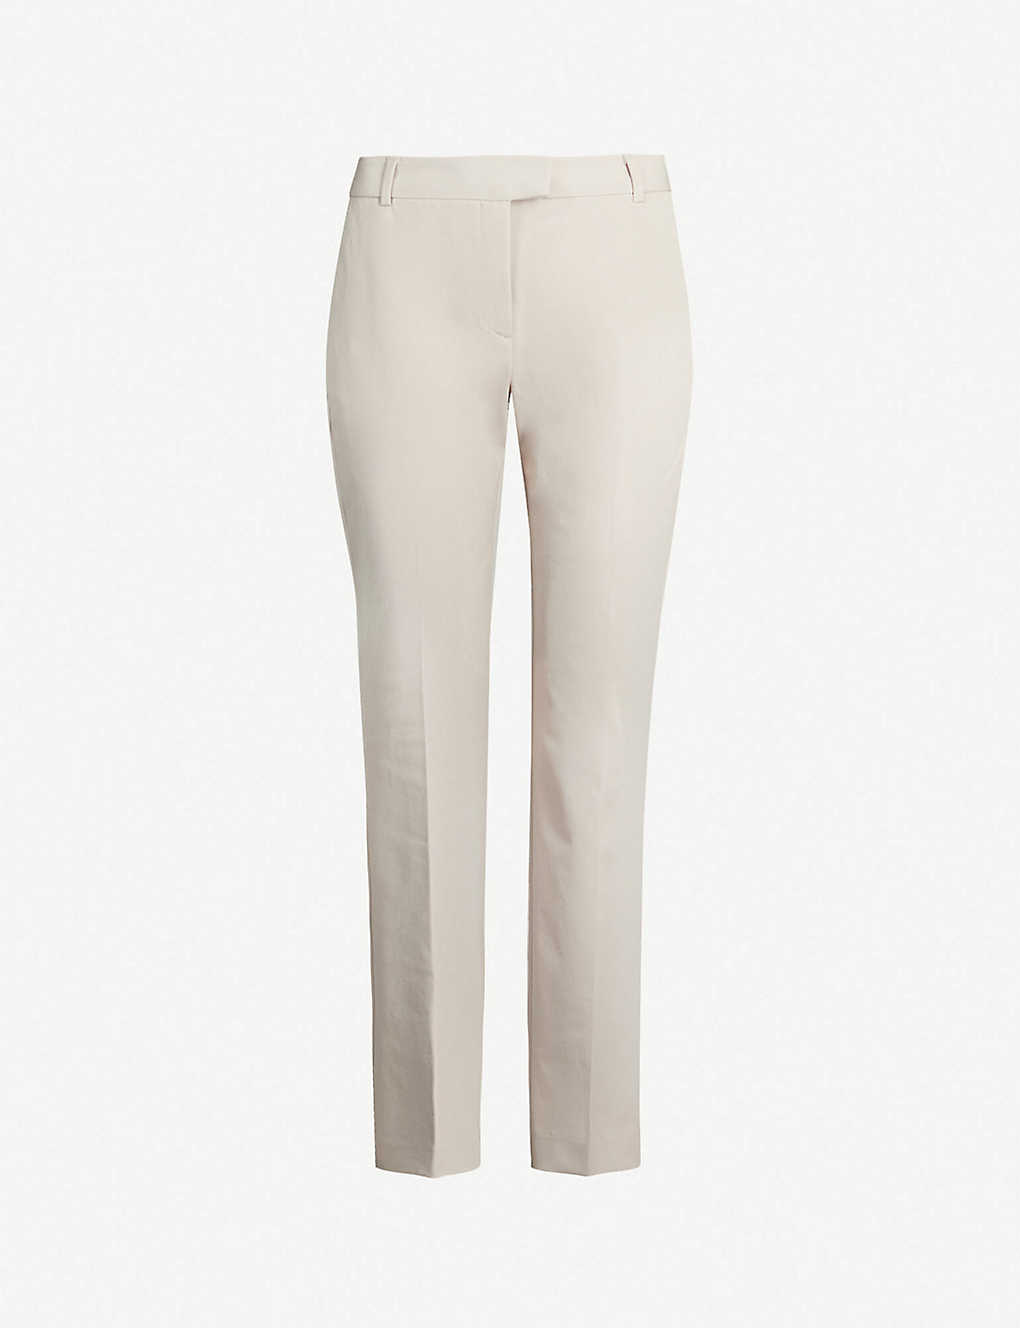 REISS: Joanne high-rise cropped crepe trousers